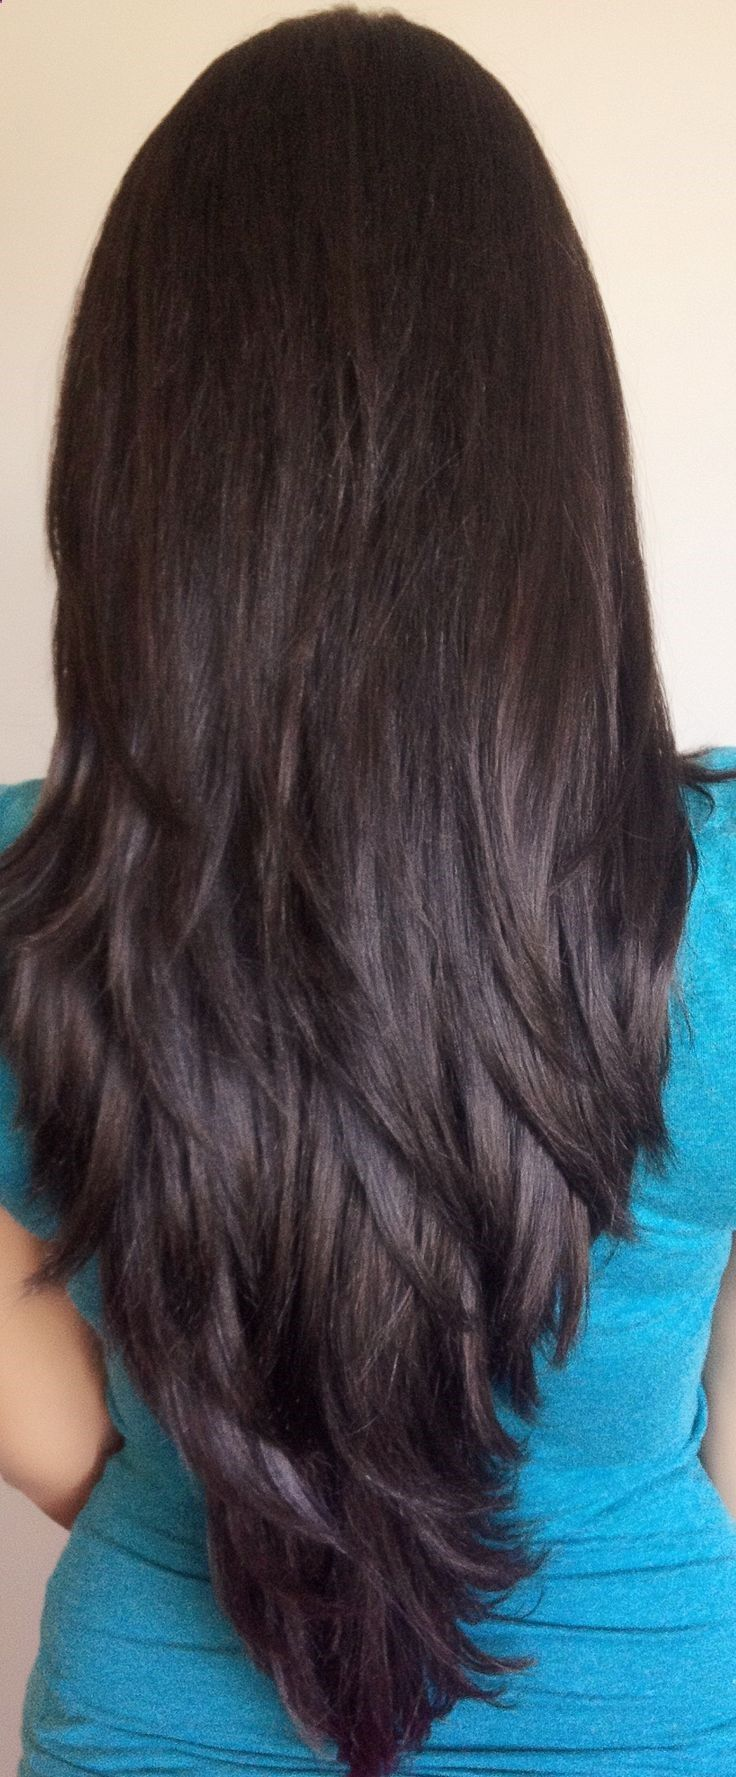 long layered haircuts back view - Google Search